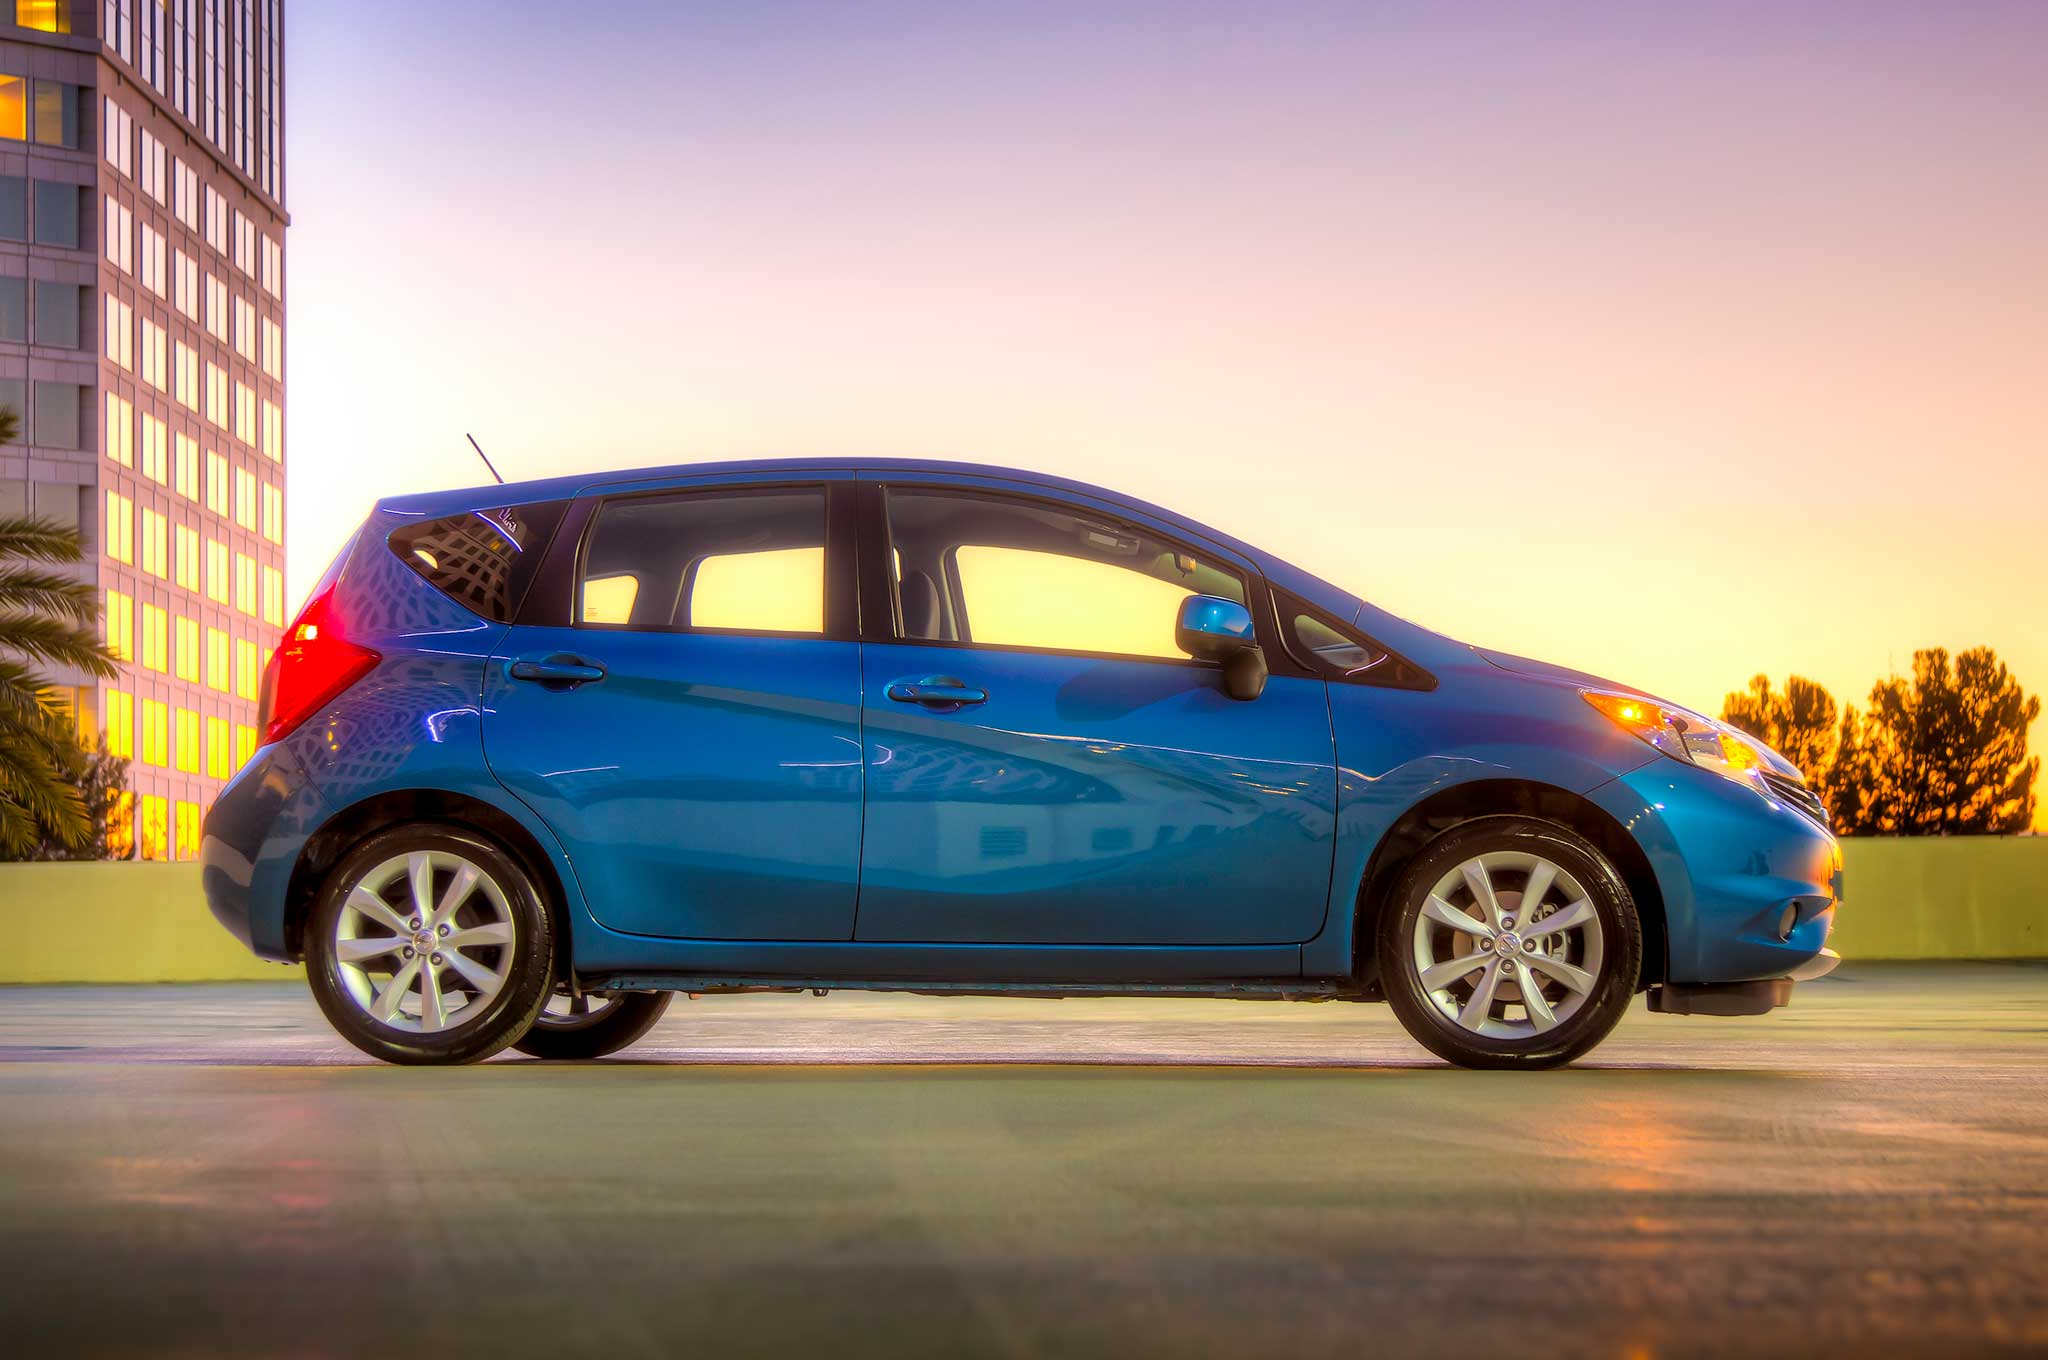 2014 nissan versa note priced from 14 780. Black Bedroom Furniture Sets. Home Design Ideas